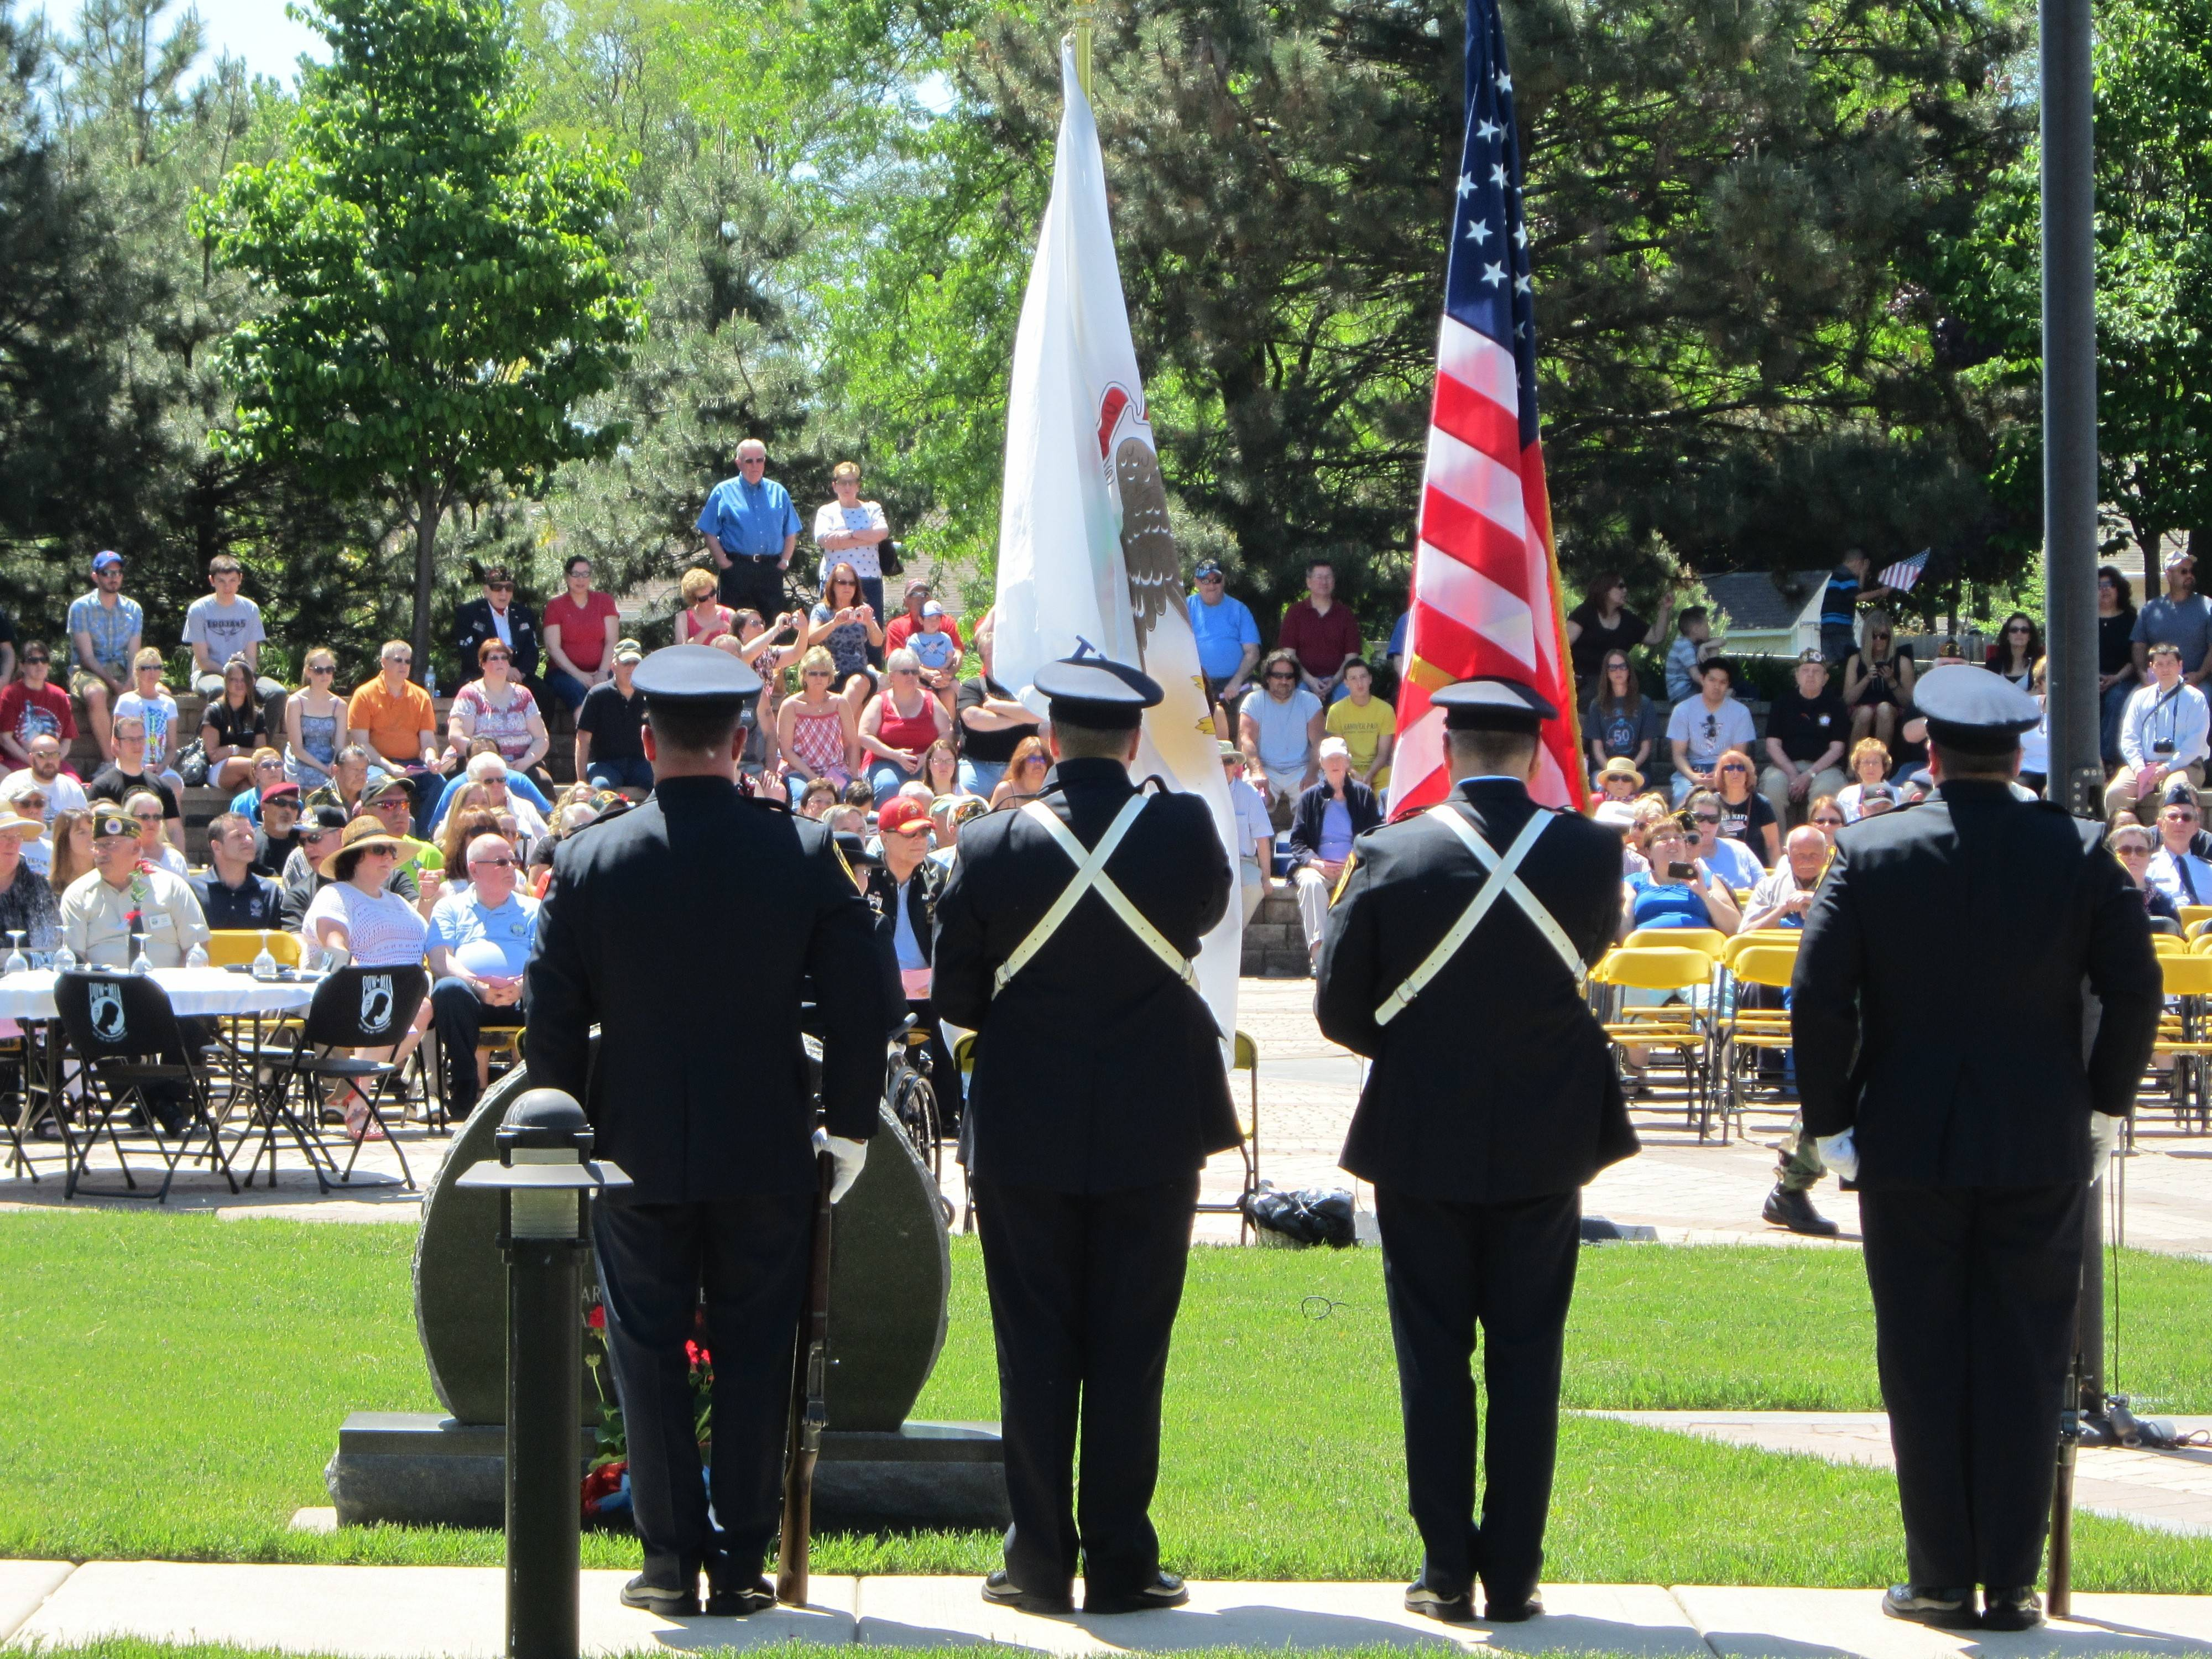 The Color Guard stands at attention during the Veterans Memorial Ceremony in Streamwood.